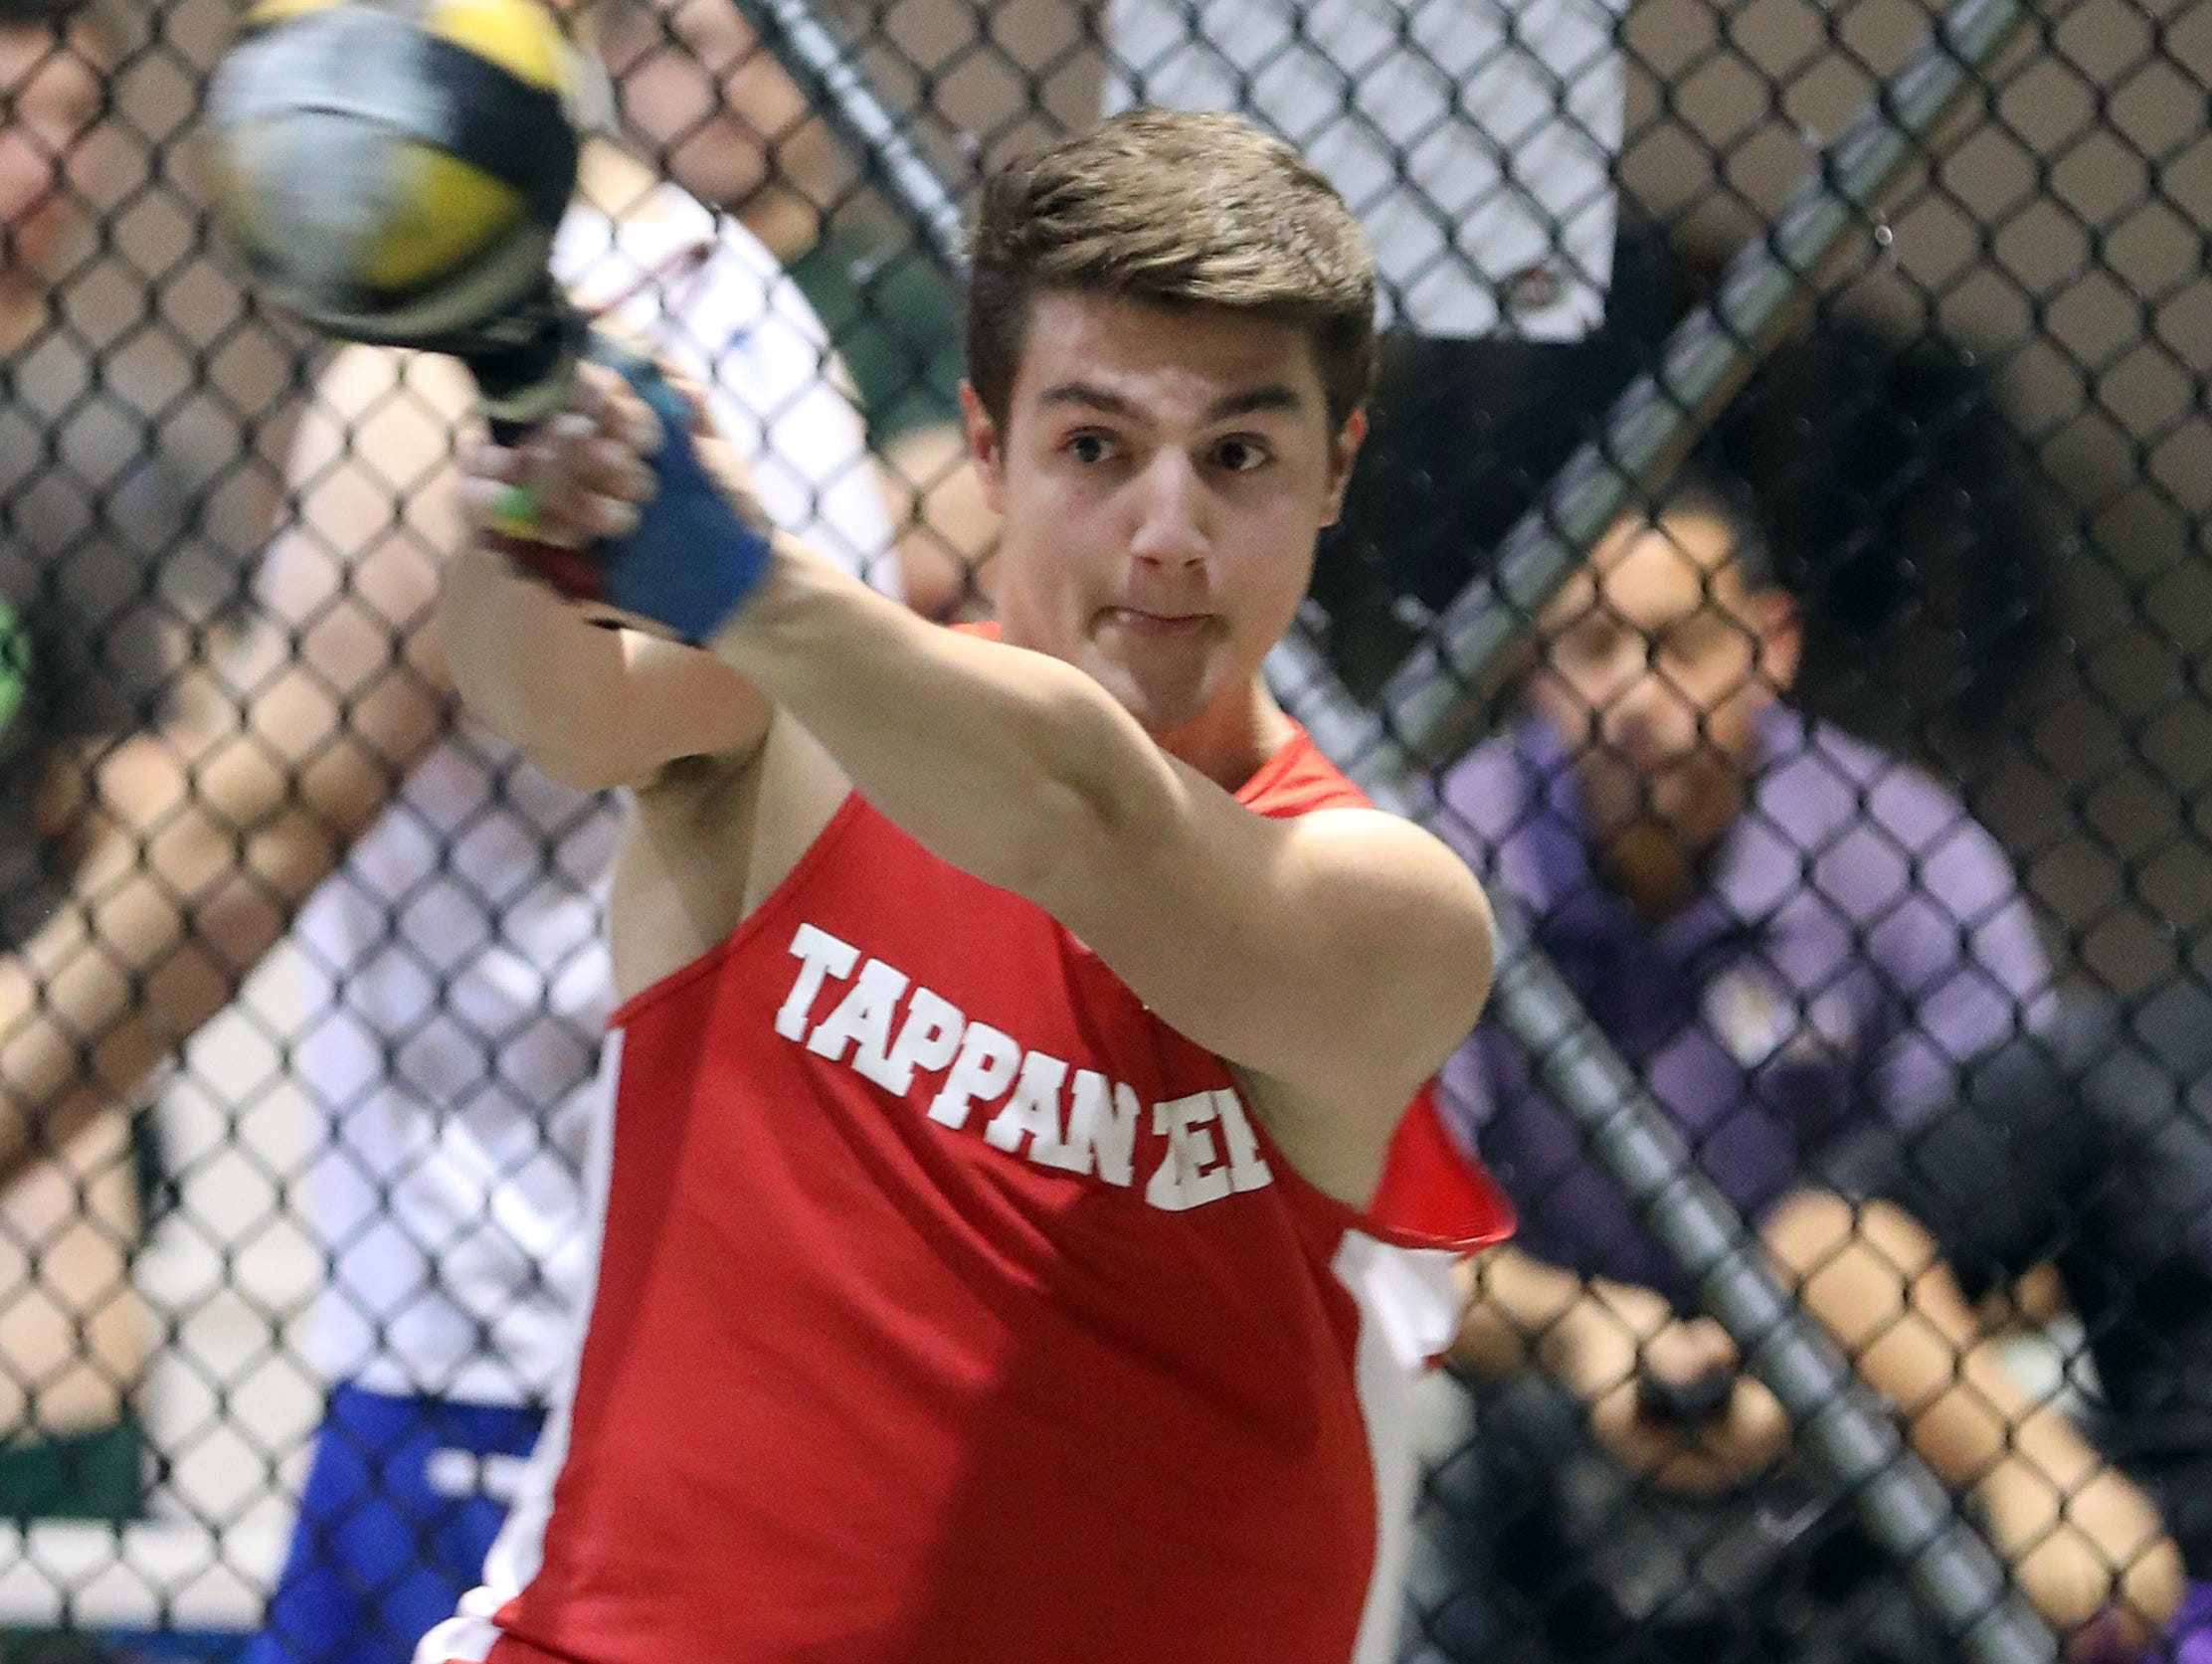 Tappan Zee's Achilles Mouzakis competes in the boys weight throw during the Millrose Games Trials at the Armory in Manhattan Jan. 9, 2019.